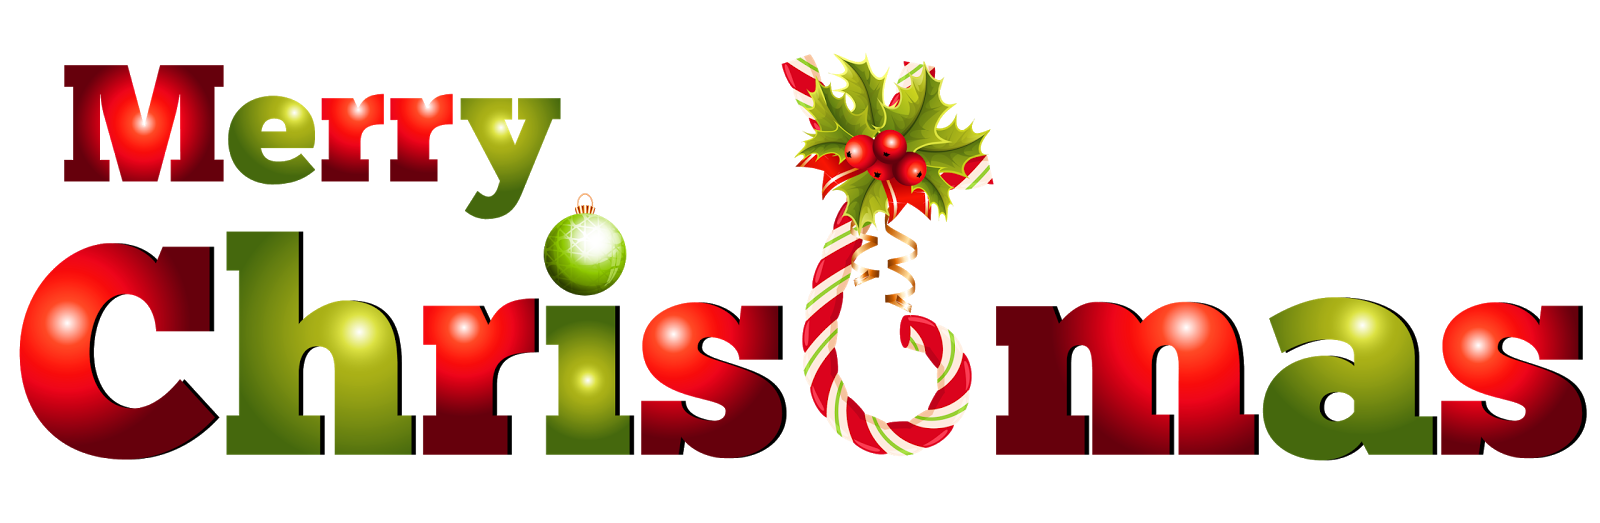 Merry christmas clip art ~ Media Wallpapers